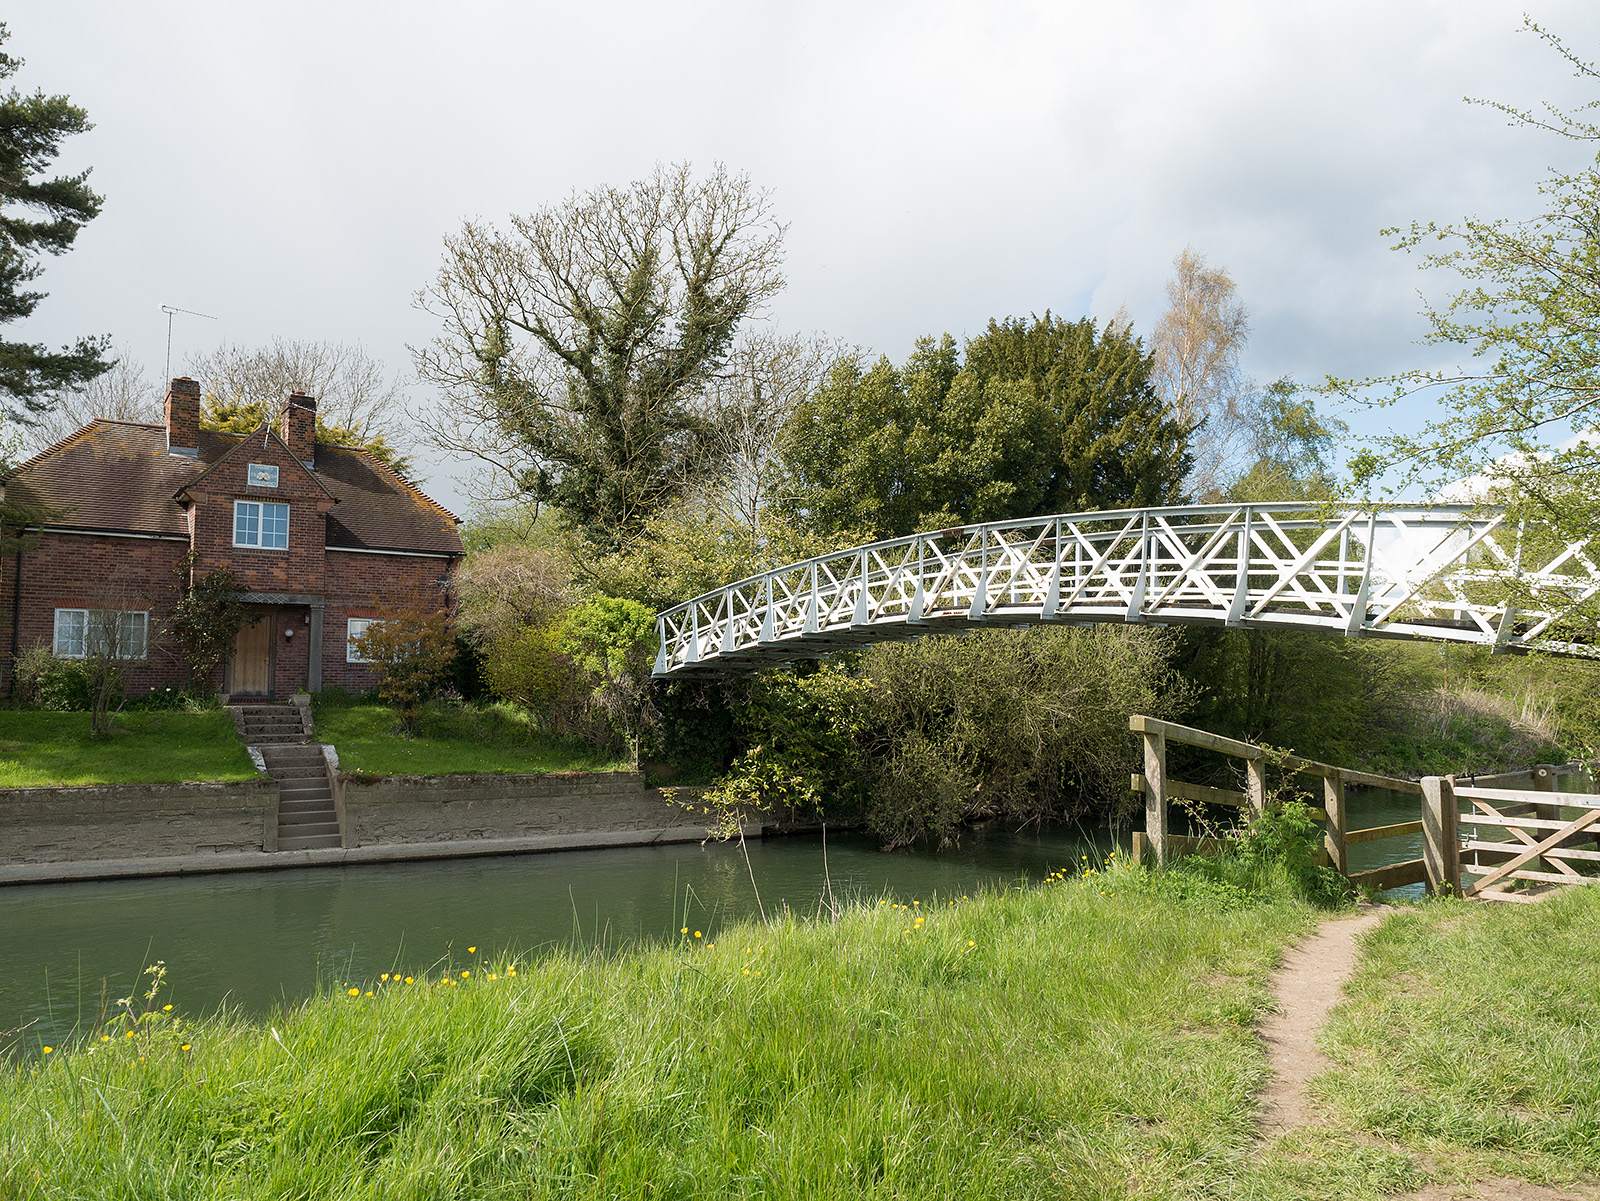 Bridge on the approach to Day's Lock